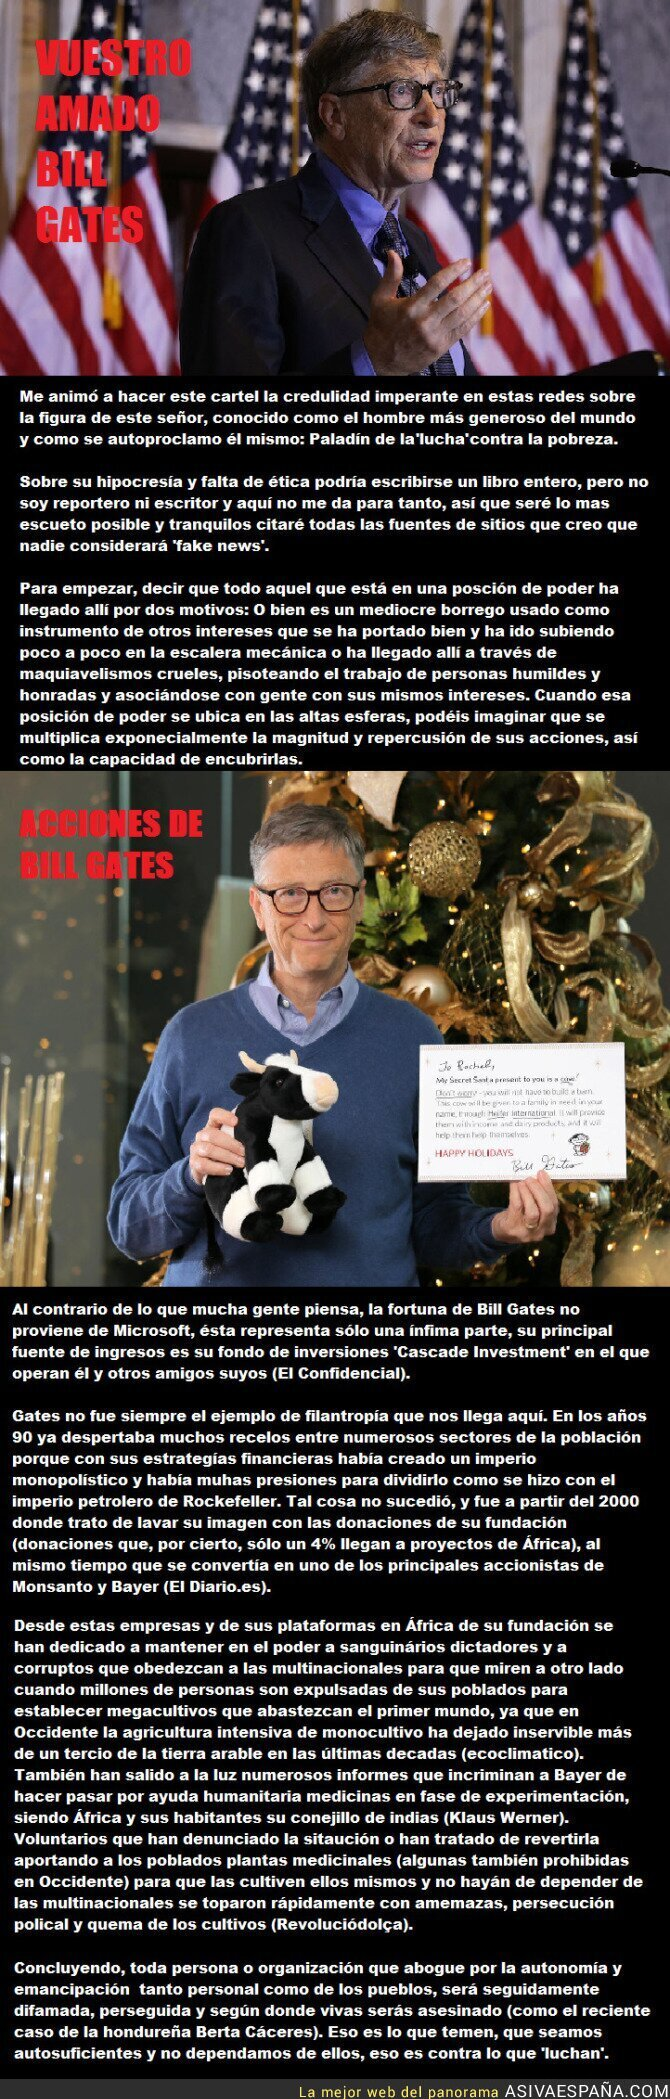 66731 - Vuestro amado Bill Gates